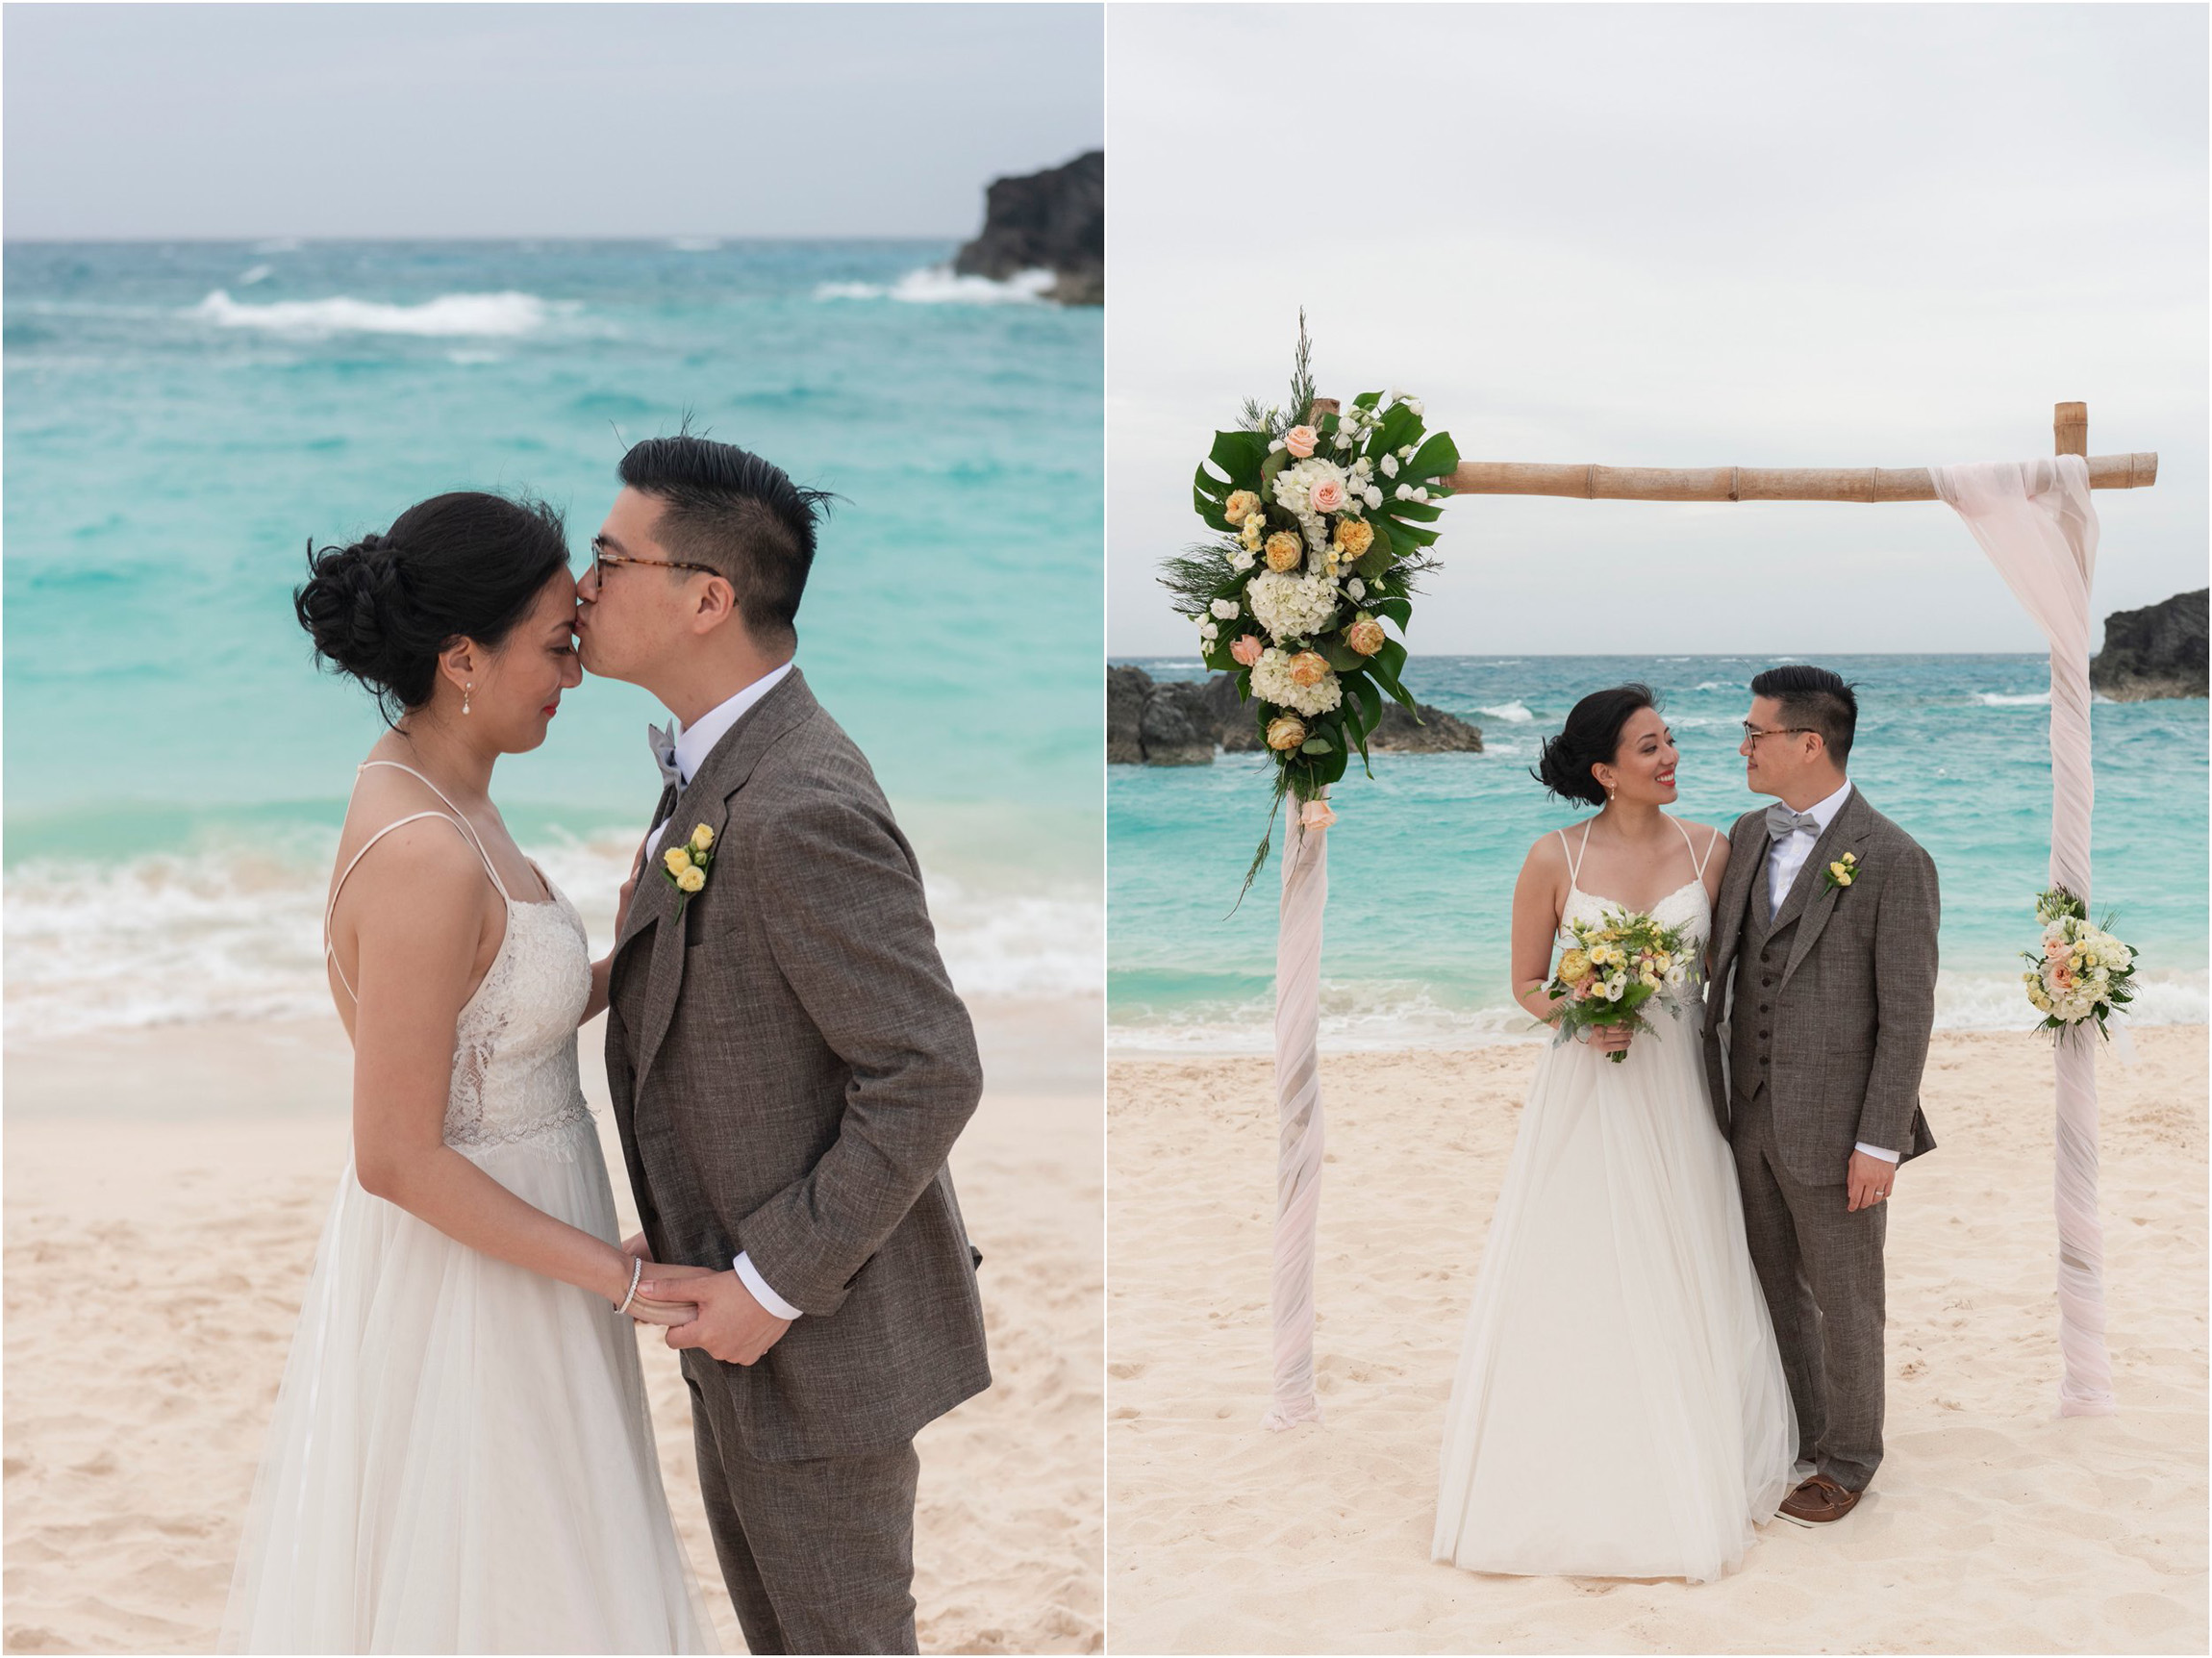 ©FianderFoto_Bermuda Wedding Photographer_Fairmont Southampton_Amy_Wilson_099.jpg